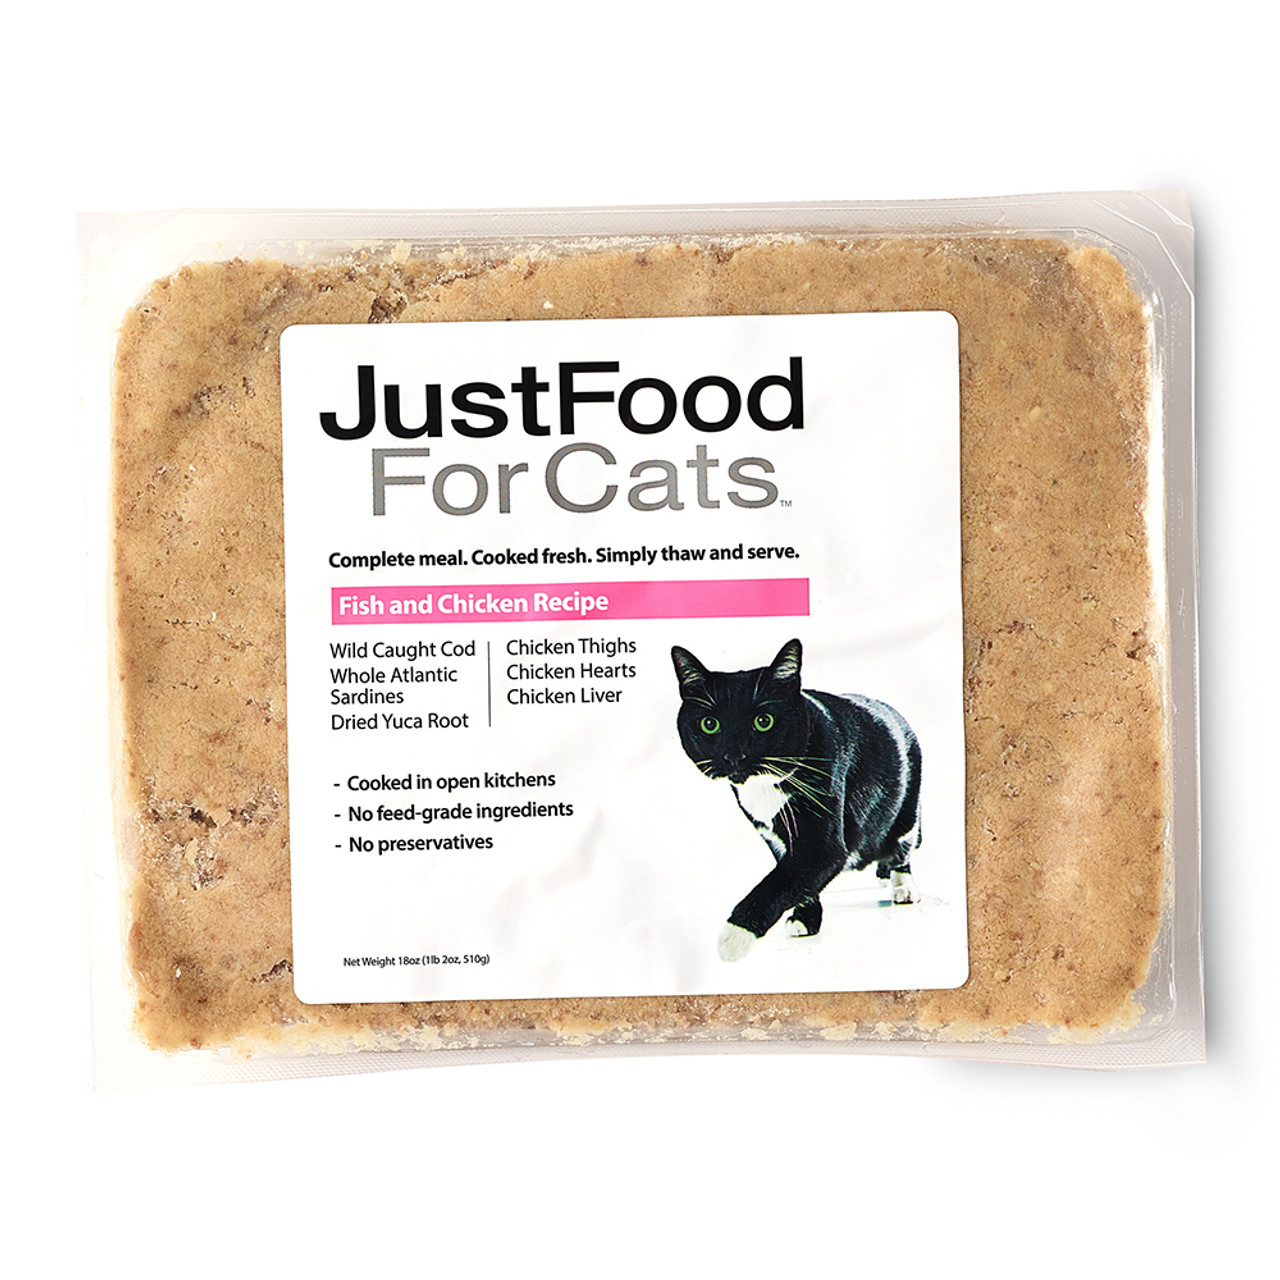 JustFoodForCats Fish & Chicken Recipe Frozen Cooked Cat Food